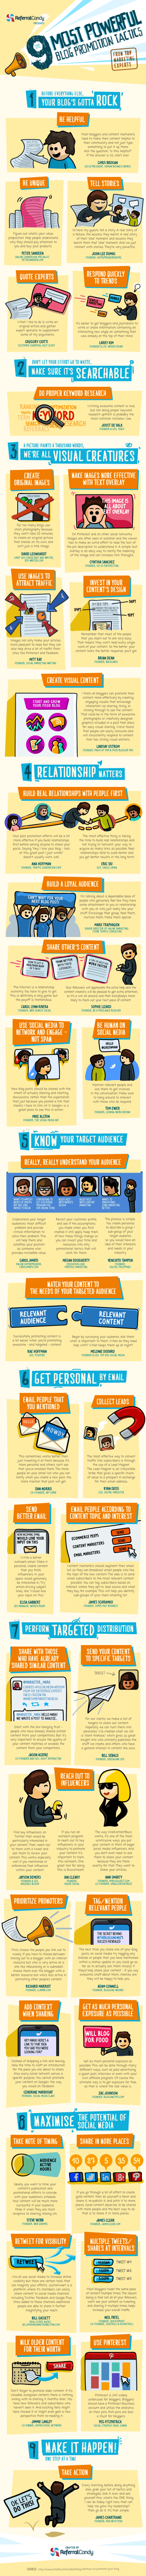 9 ways to promote your blog posts